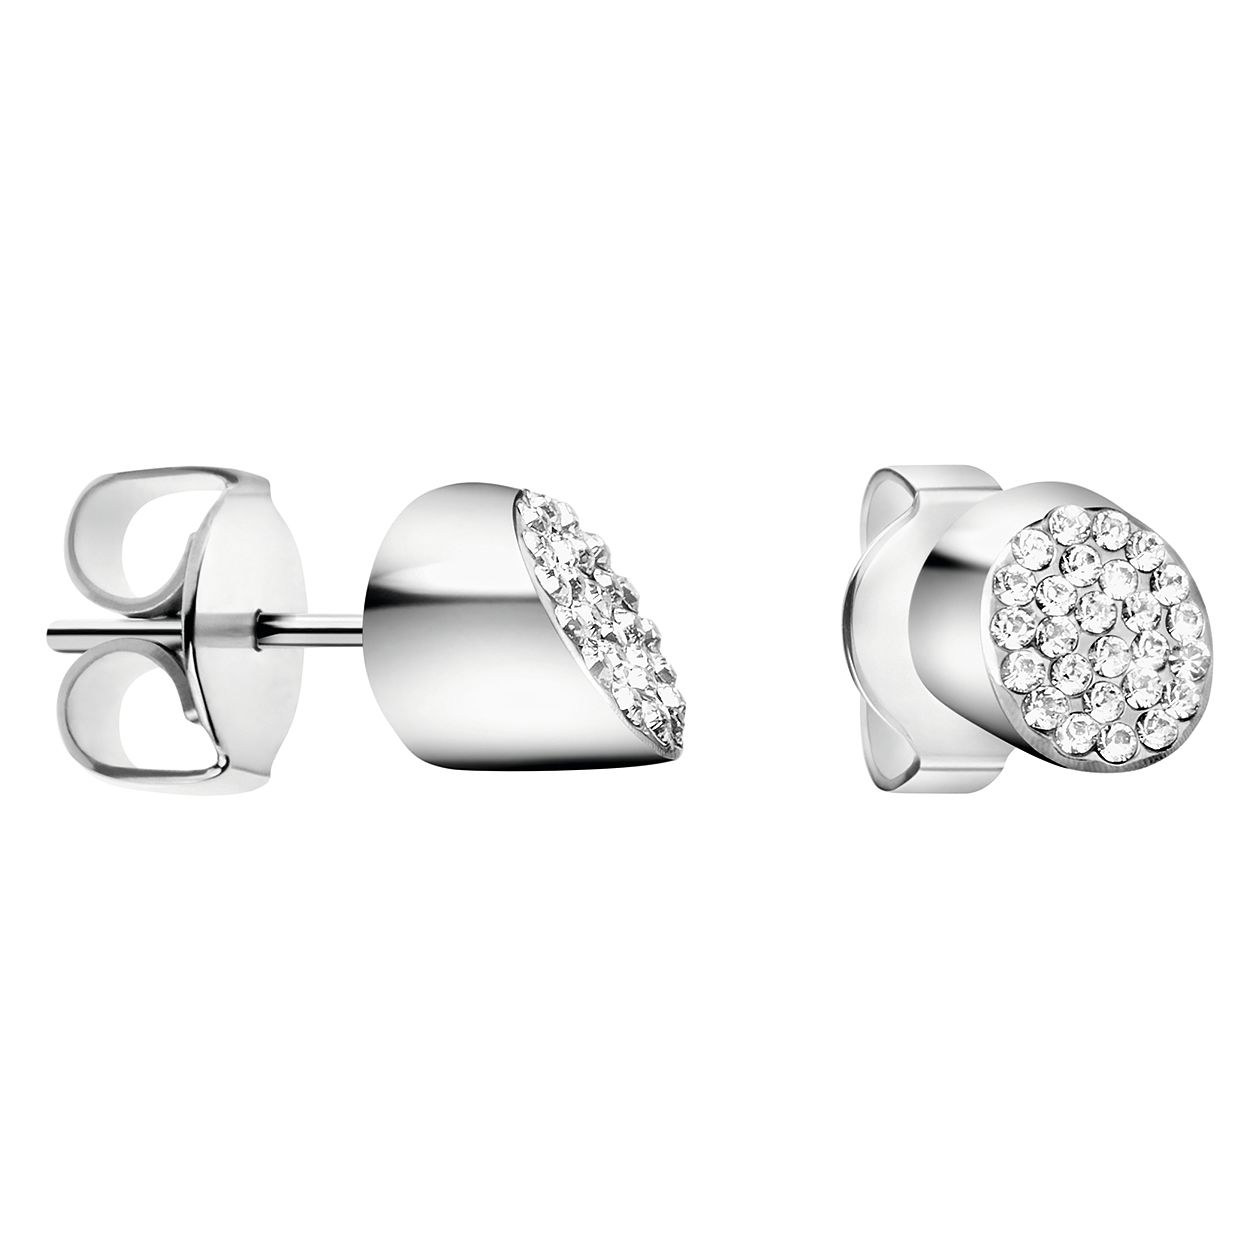 Calvin Klein Stainless Steel White Crystal Stud Earrings - Product number 4029720